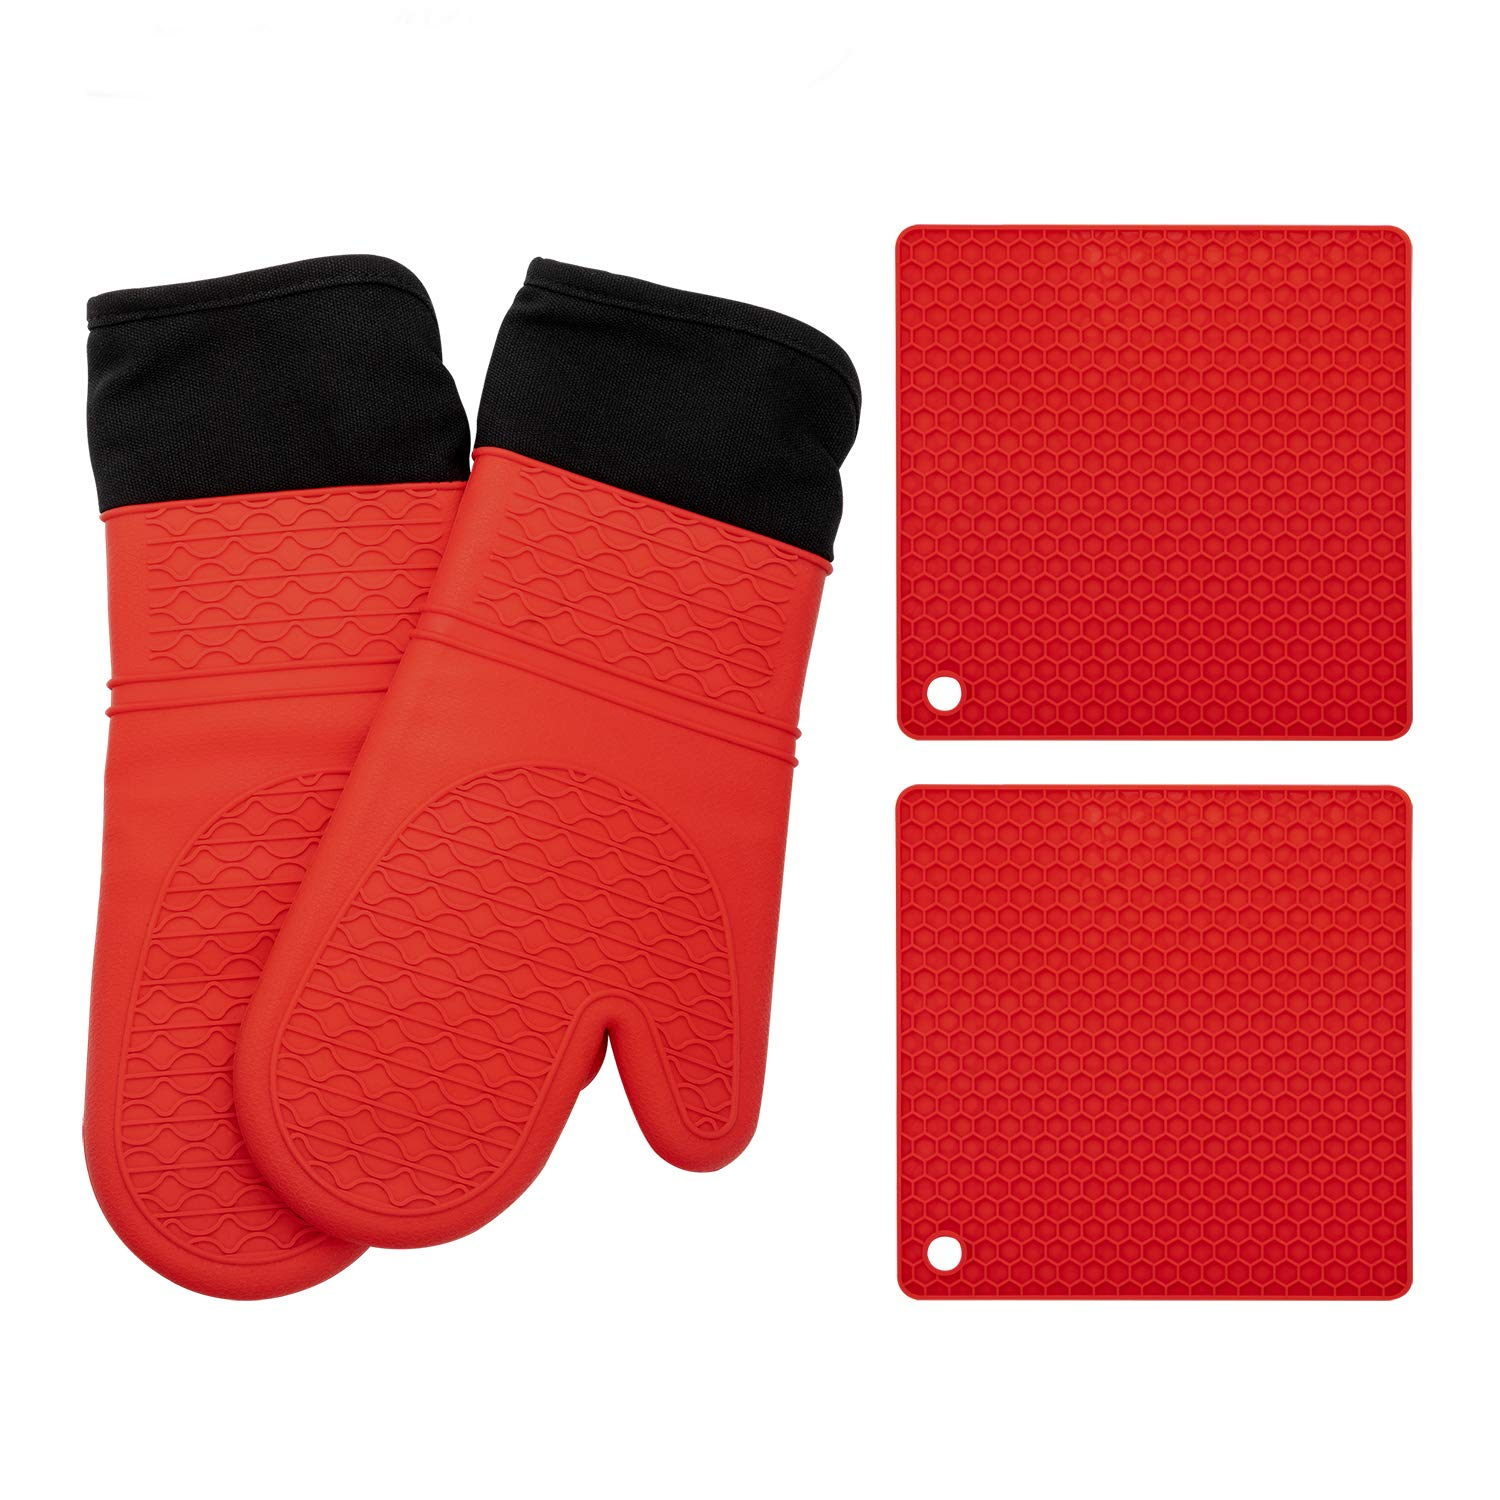 Elegant Life Silicone Oven Mitts, Oven Mitts and Potholders(4-Piece Sets),Kitchen Counter Safe Trivet Mats,Advanced Heat Resistant Oven Mitt, Non-Slip Textured Grip Pot Holders